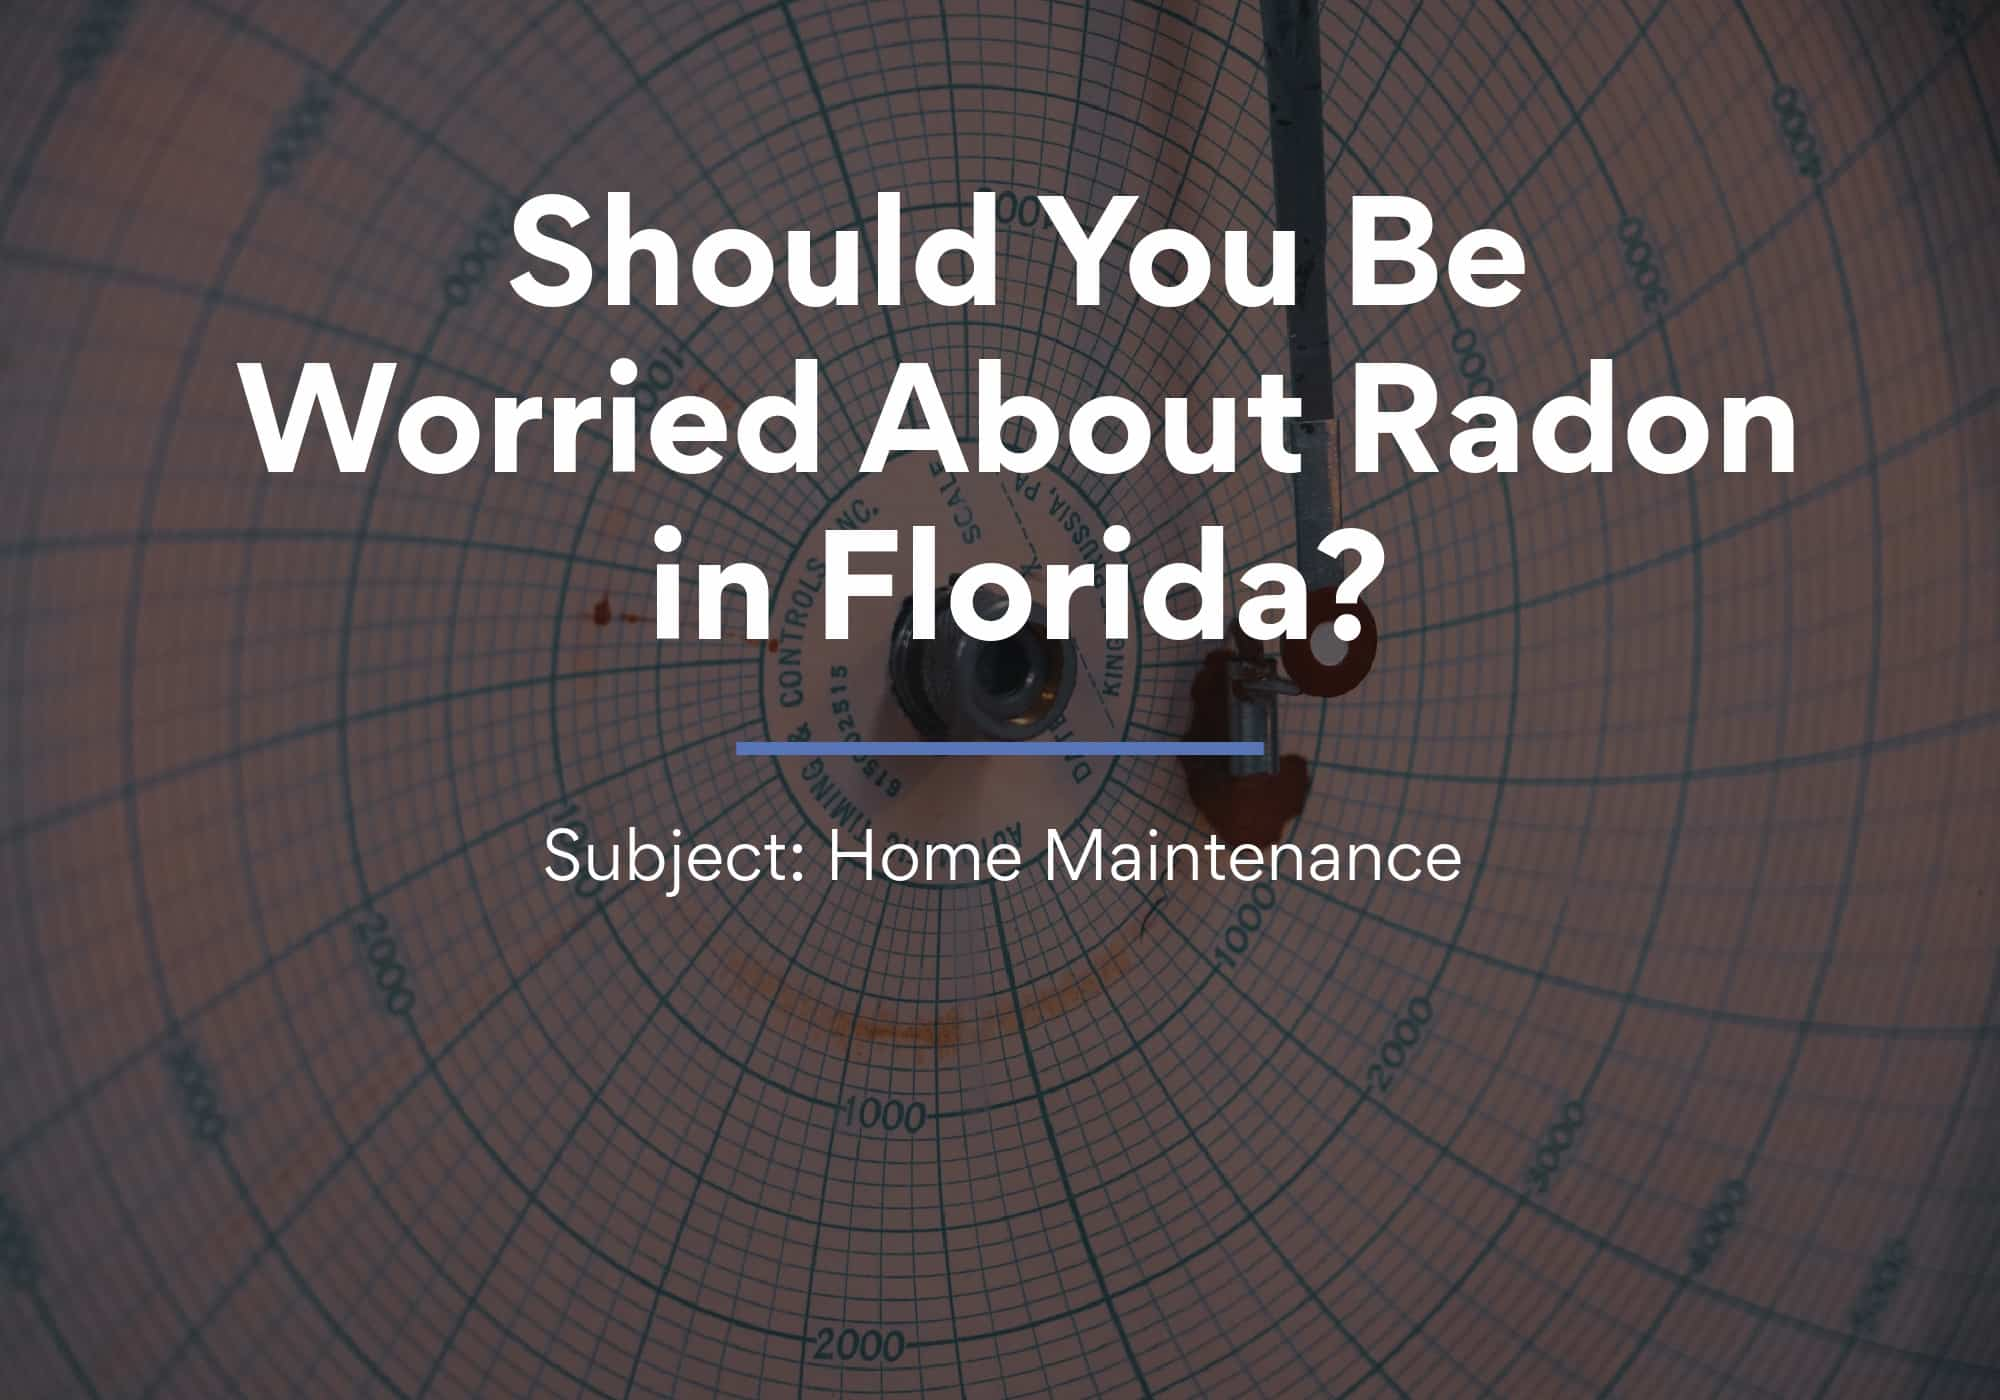 Should You Be Worried About Radon in Florida?